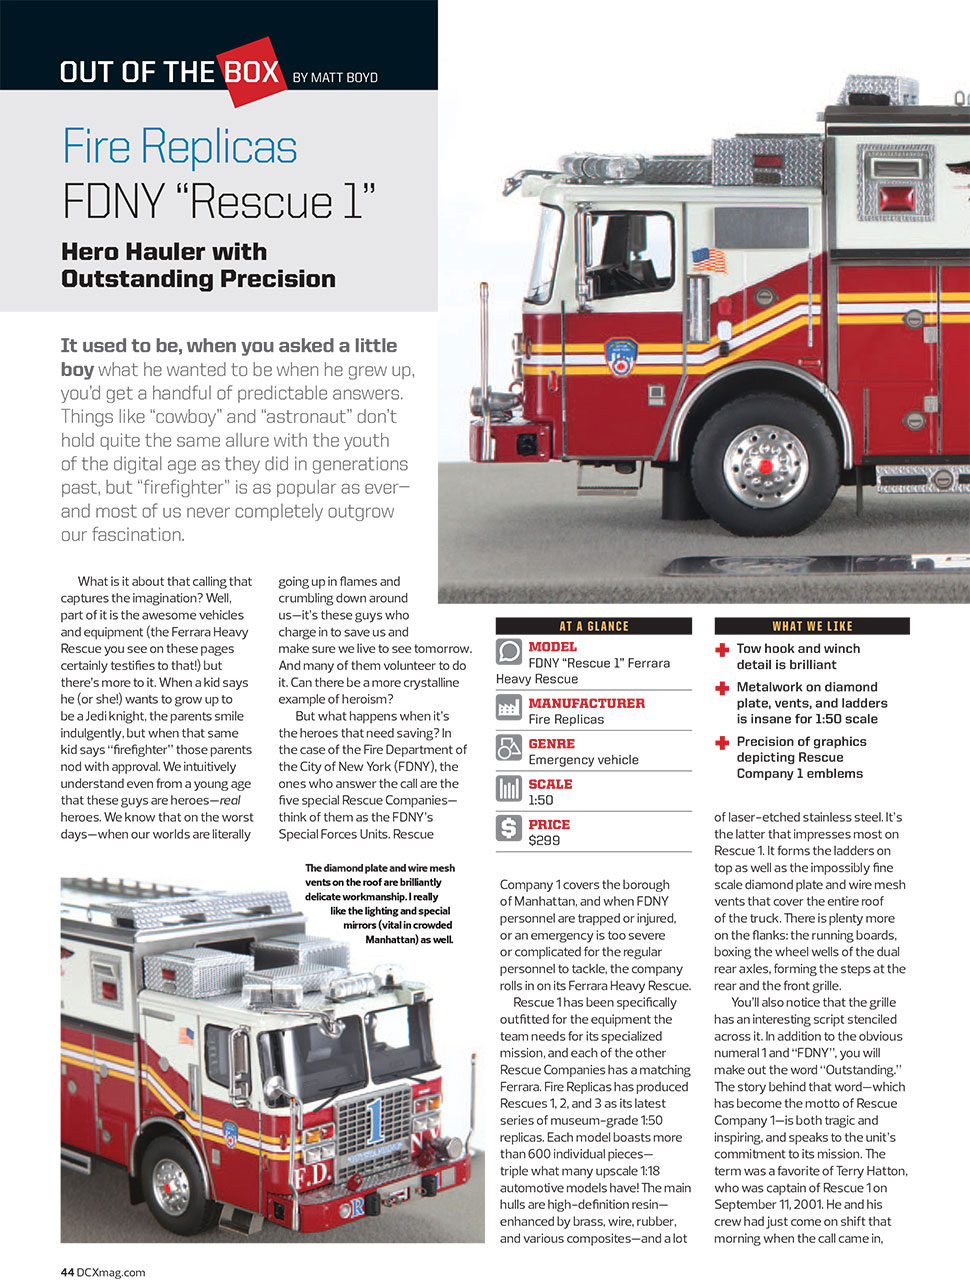 Learn more about FDNY Rescue 1